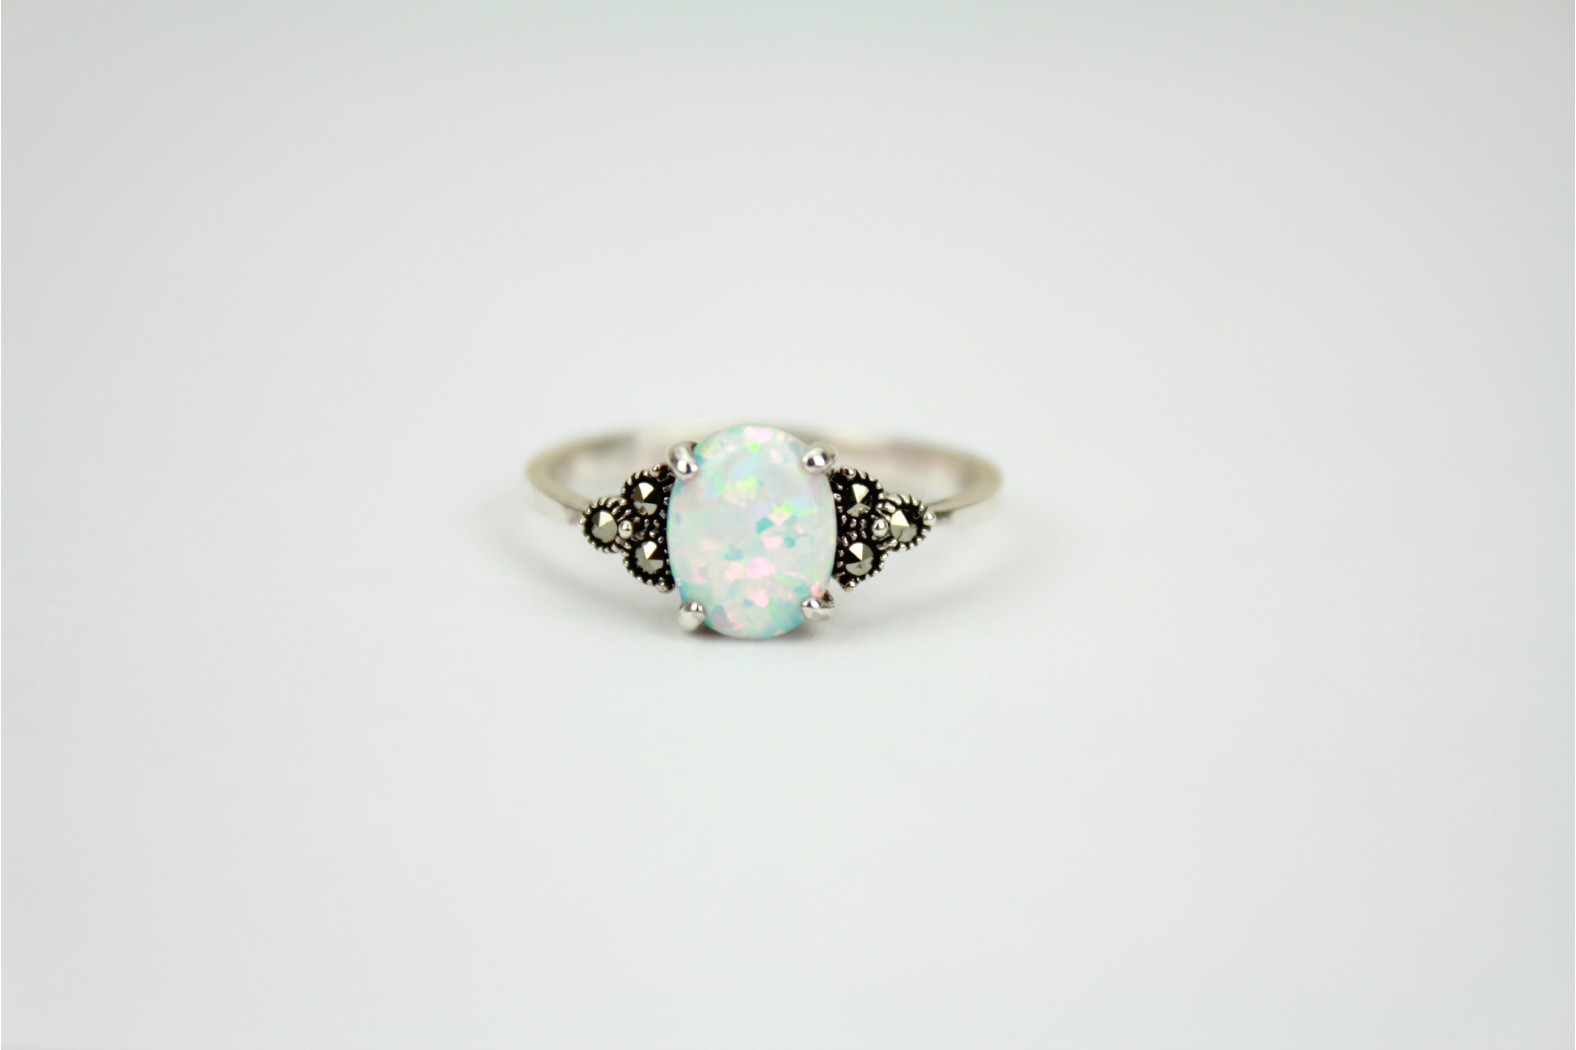 Petite claw set oval shaped White Opal Fire with minimal Marcasite stones on shoulders. size 9 or R. TEMPORARILY OUT OF STOCK.